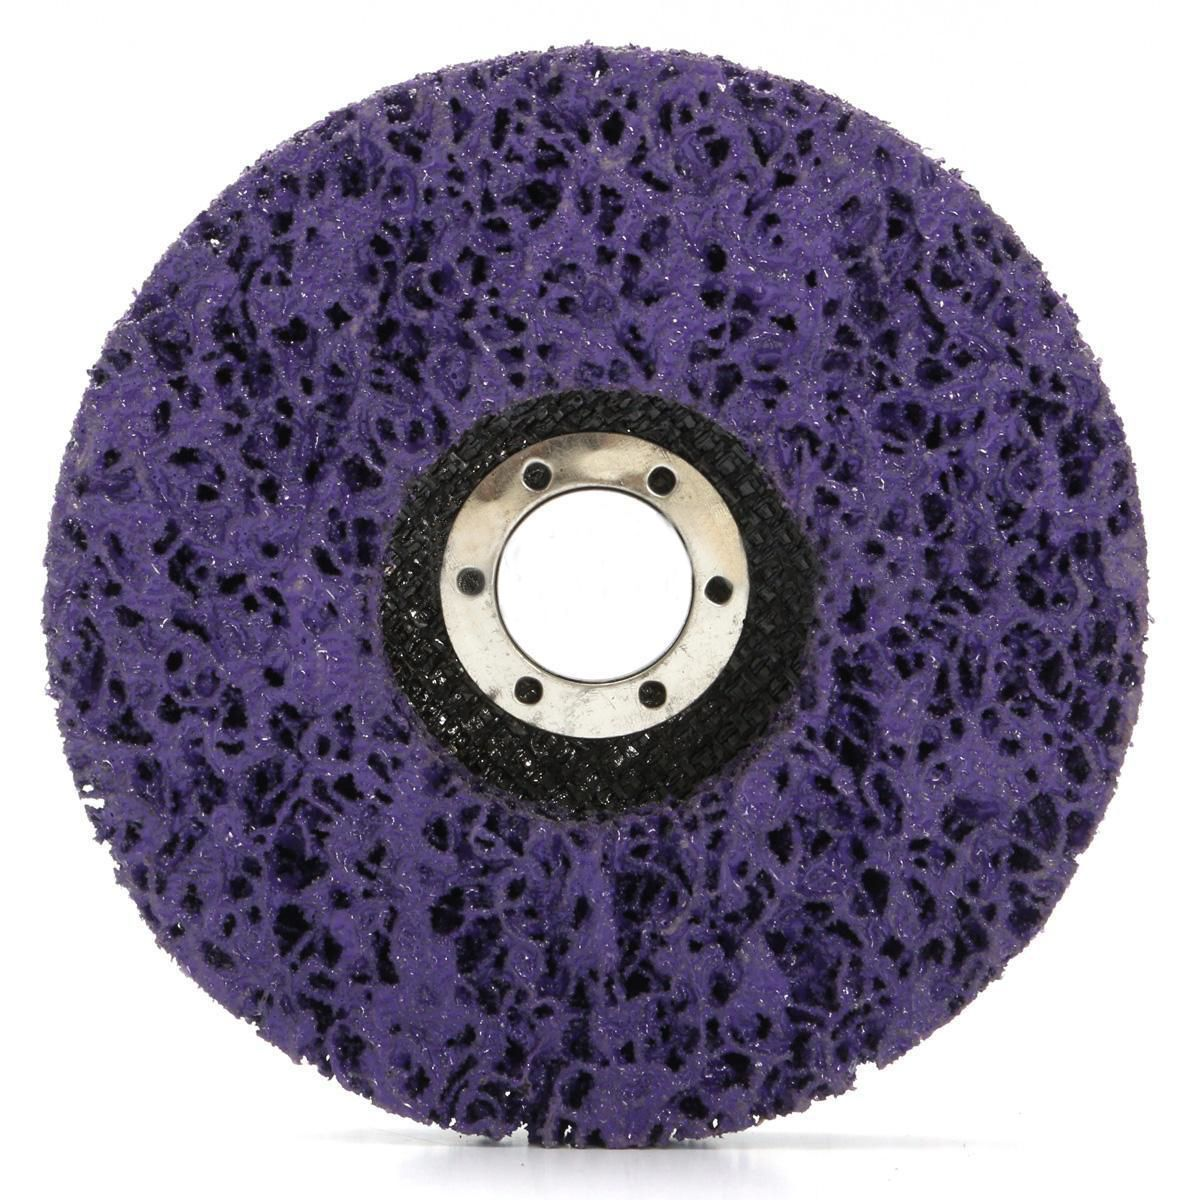 2pcs 125mm Clean Grinding Wheels Paint Rust Removal Poly Strip Disc 40 Grits For <font><b>Angle</b></font> Grinder